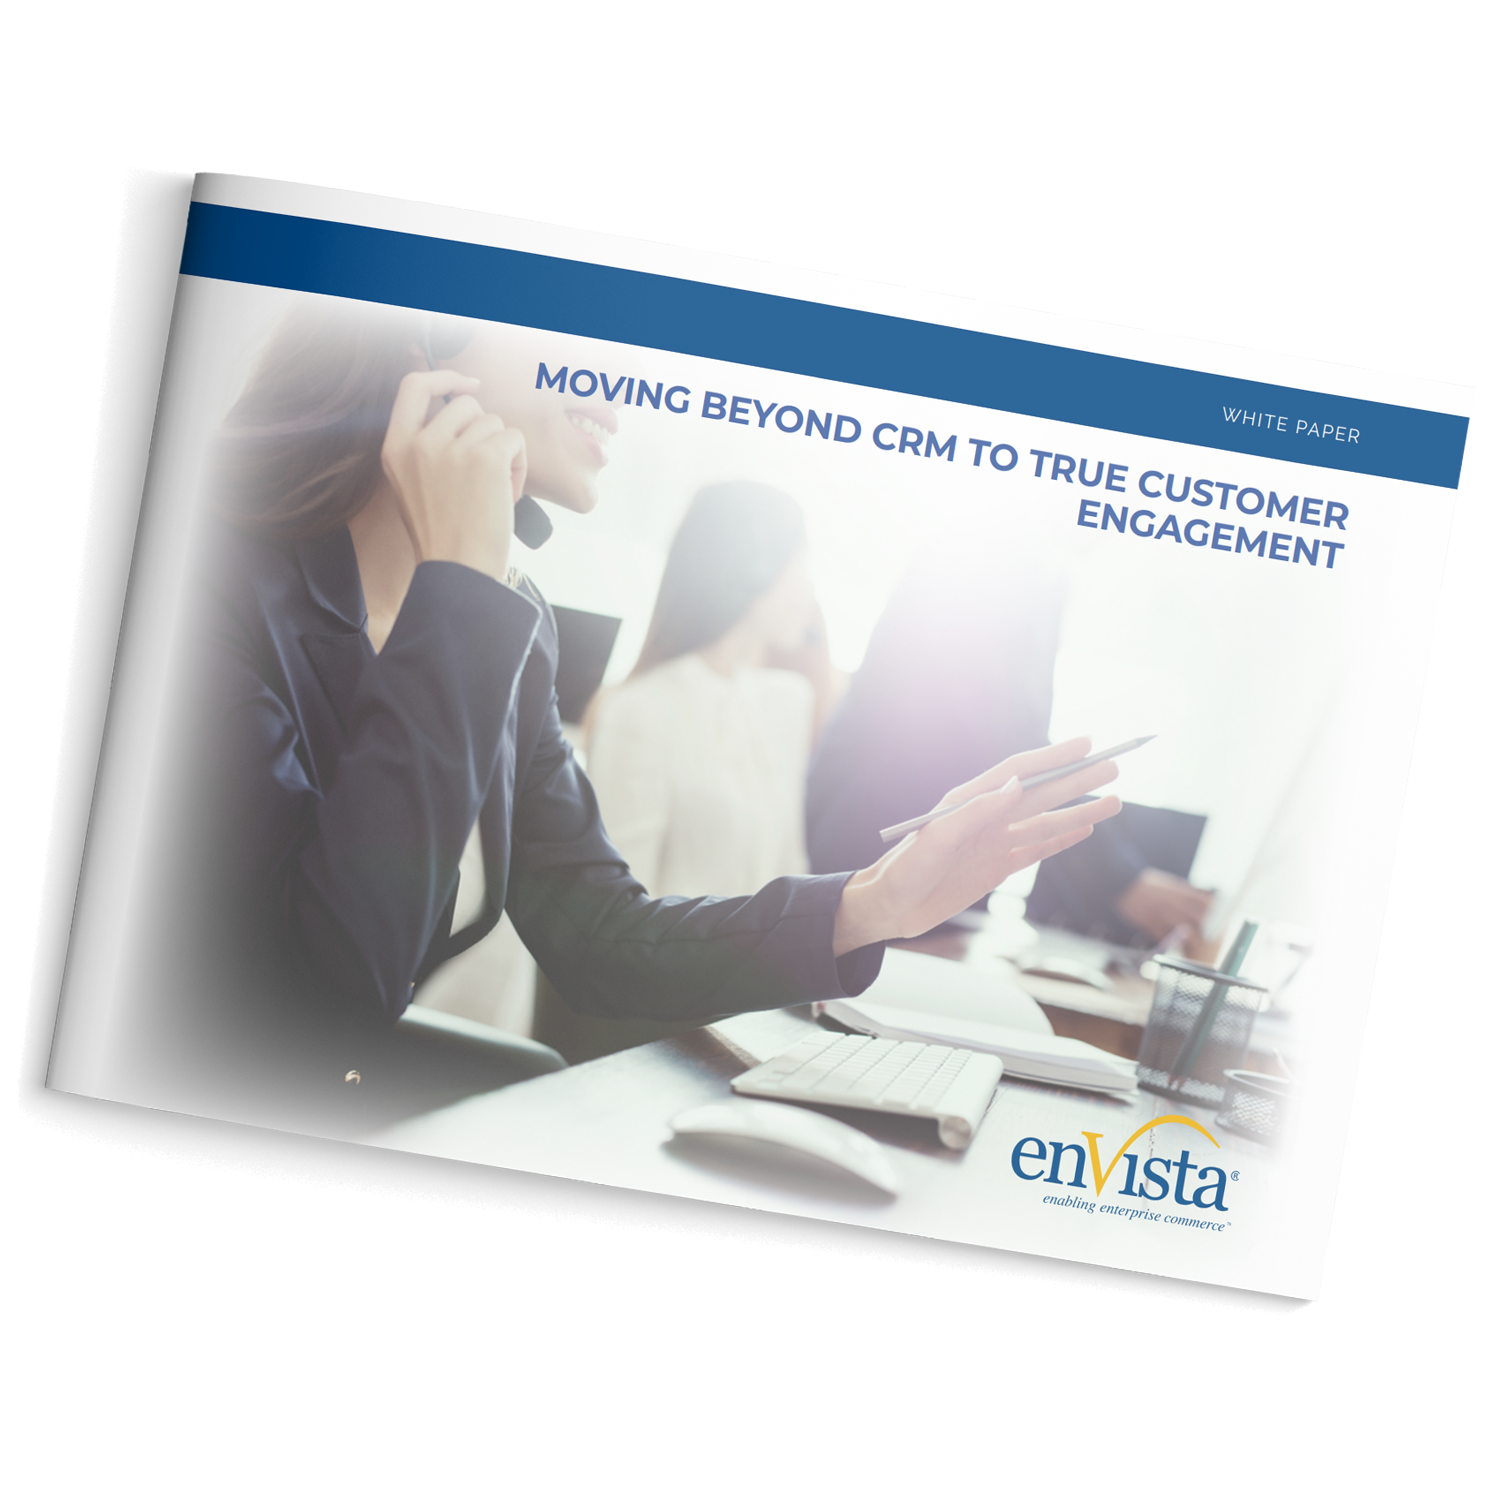 moving beyond crm white paper